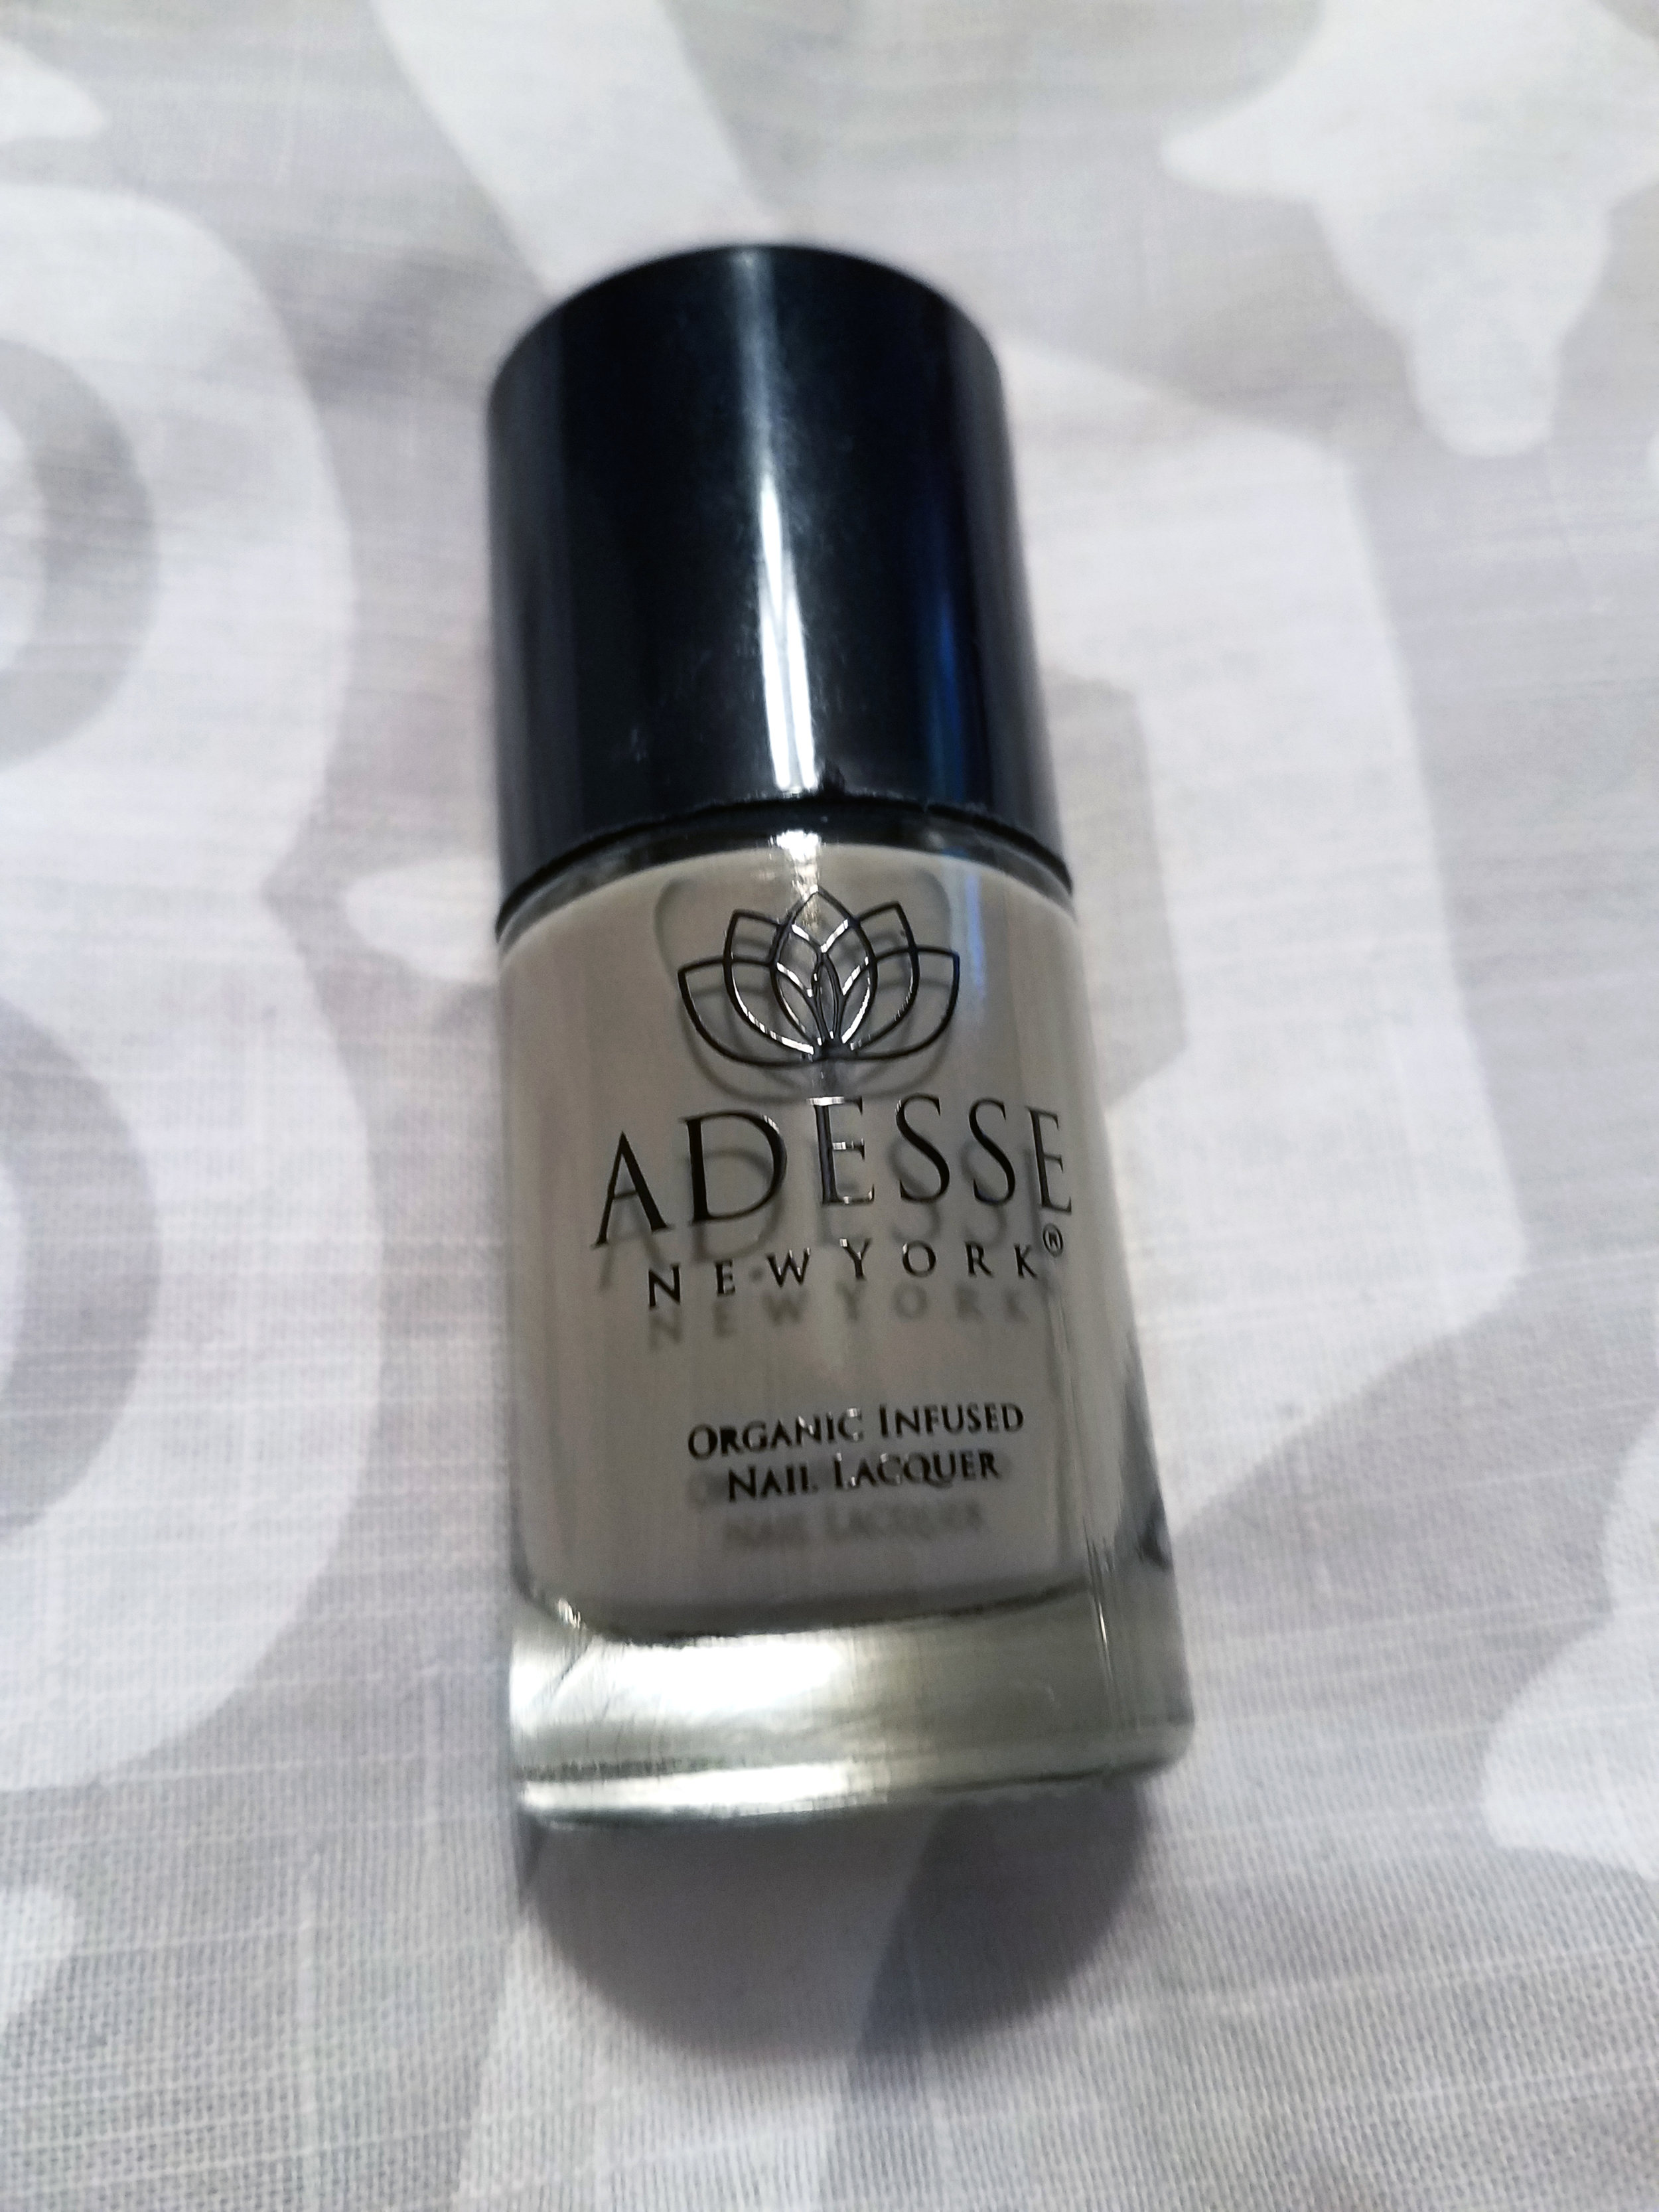 Adesse New York Organic Infused Gel Effect Nail Lacquer in Deception